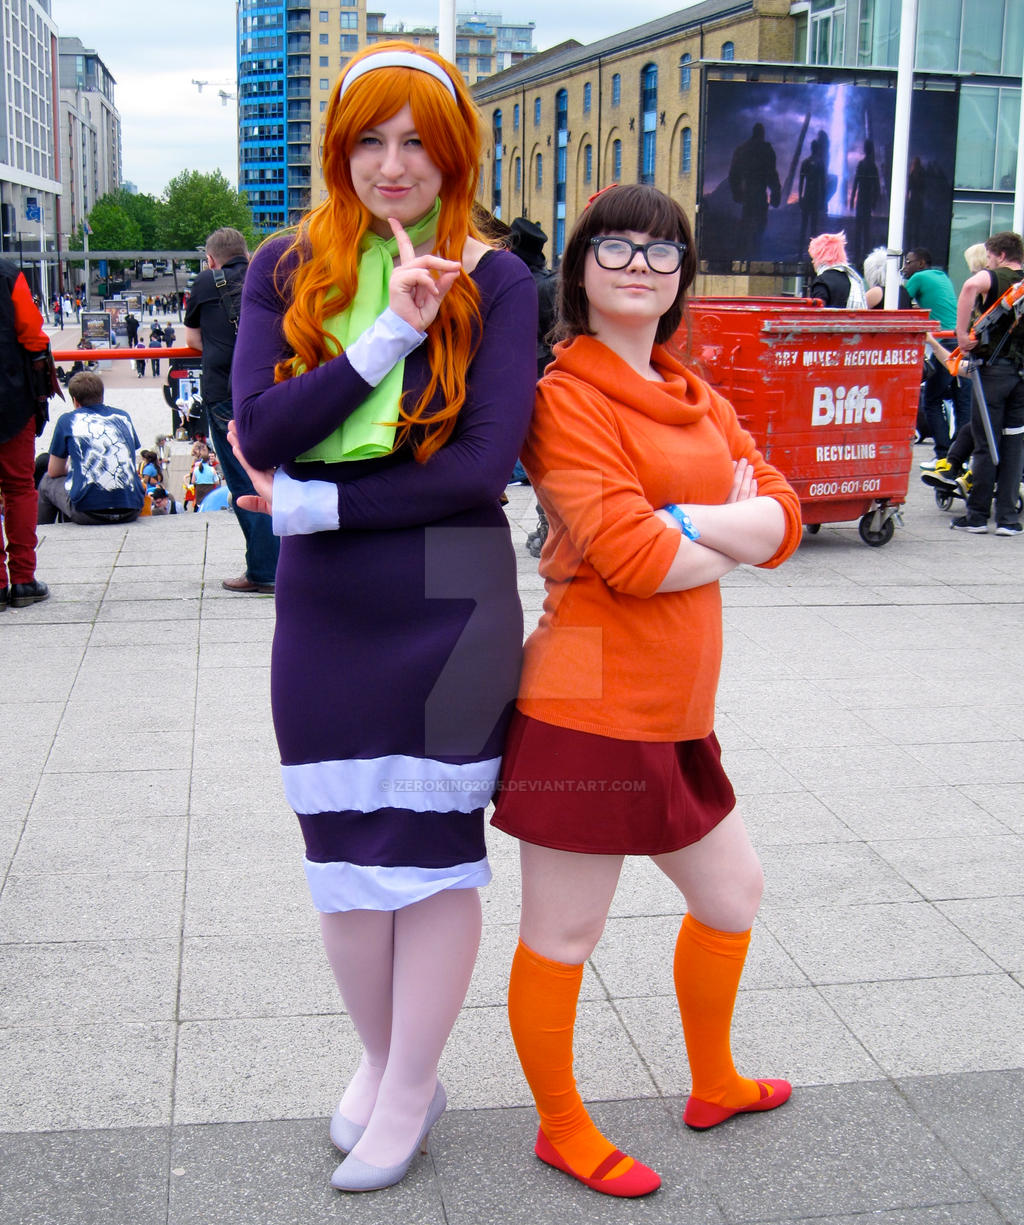 Daphne and Velma from Scooby Doo by ZeroKing2015 on DeviantArt